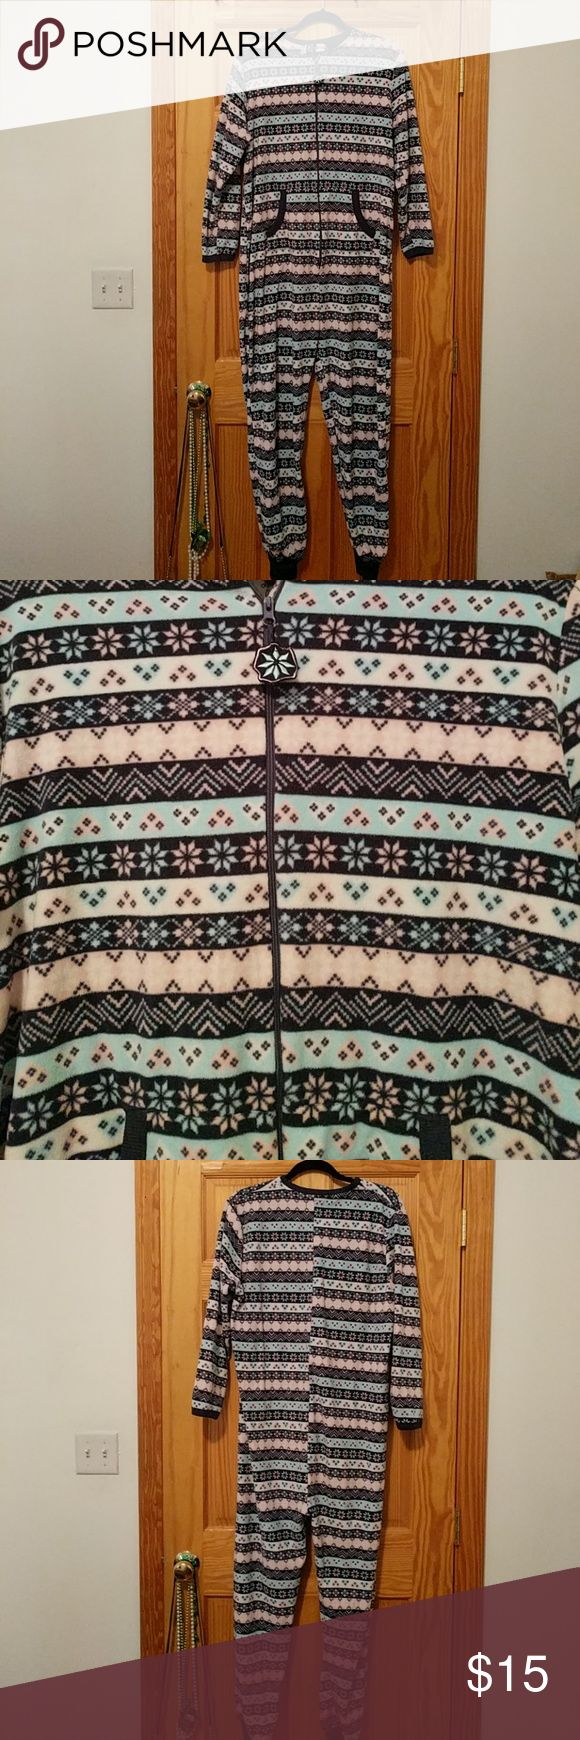 Adult Footie pajamas sz L Super comfy pink amd blue footie pajamas. Excellent condition. No rips or stains. Get this for your next binge watching weekend! Intimates & Sleepwear Pajamas